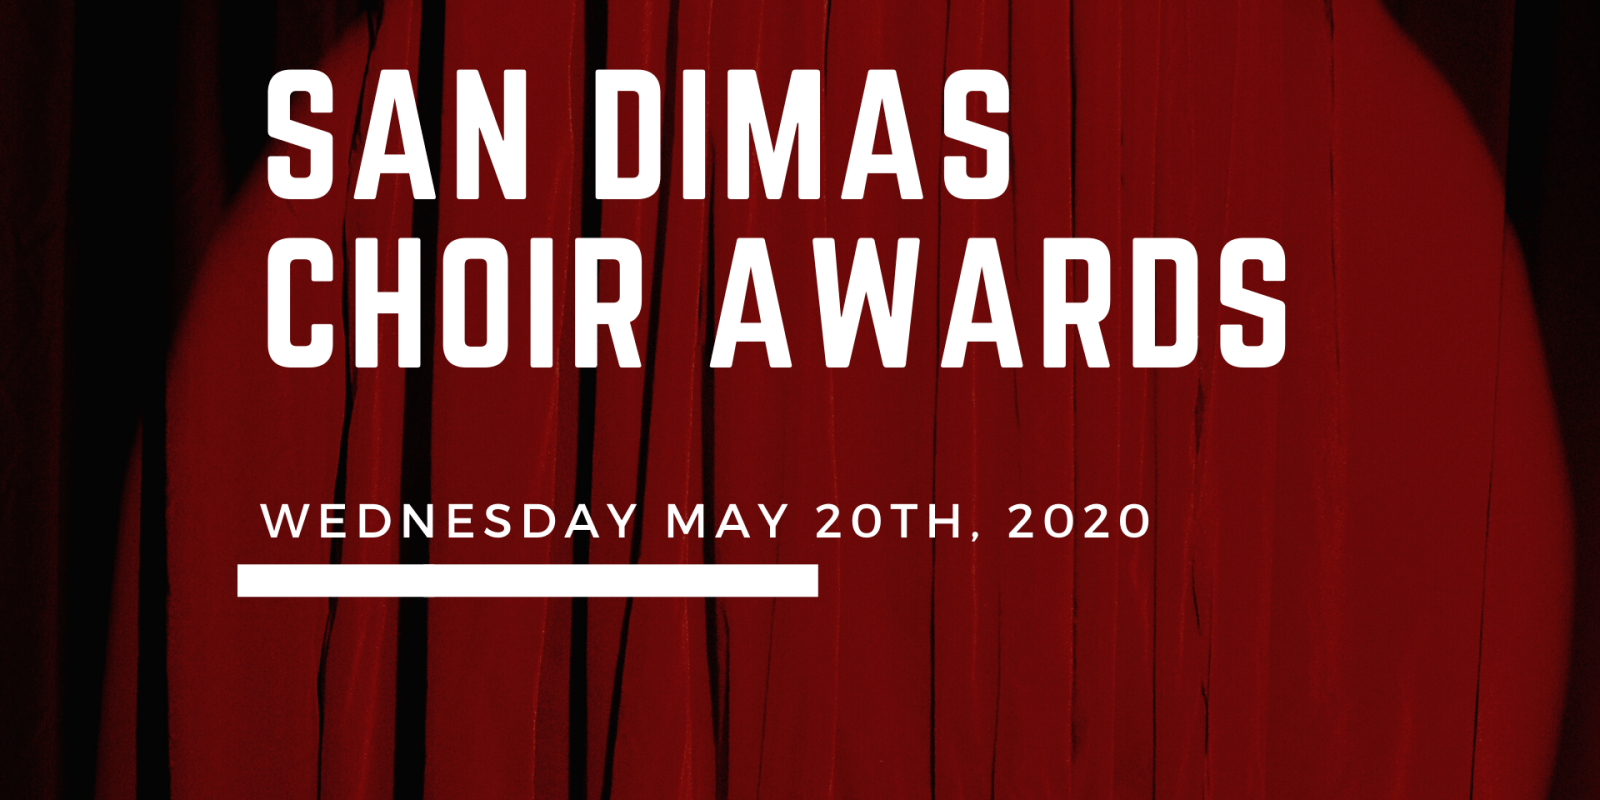 San Dimas Choir Awards